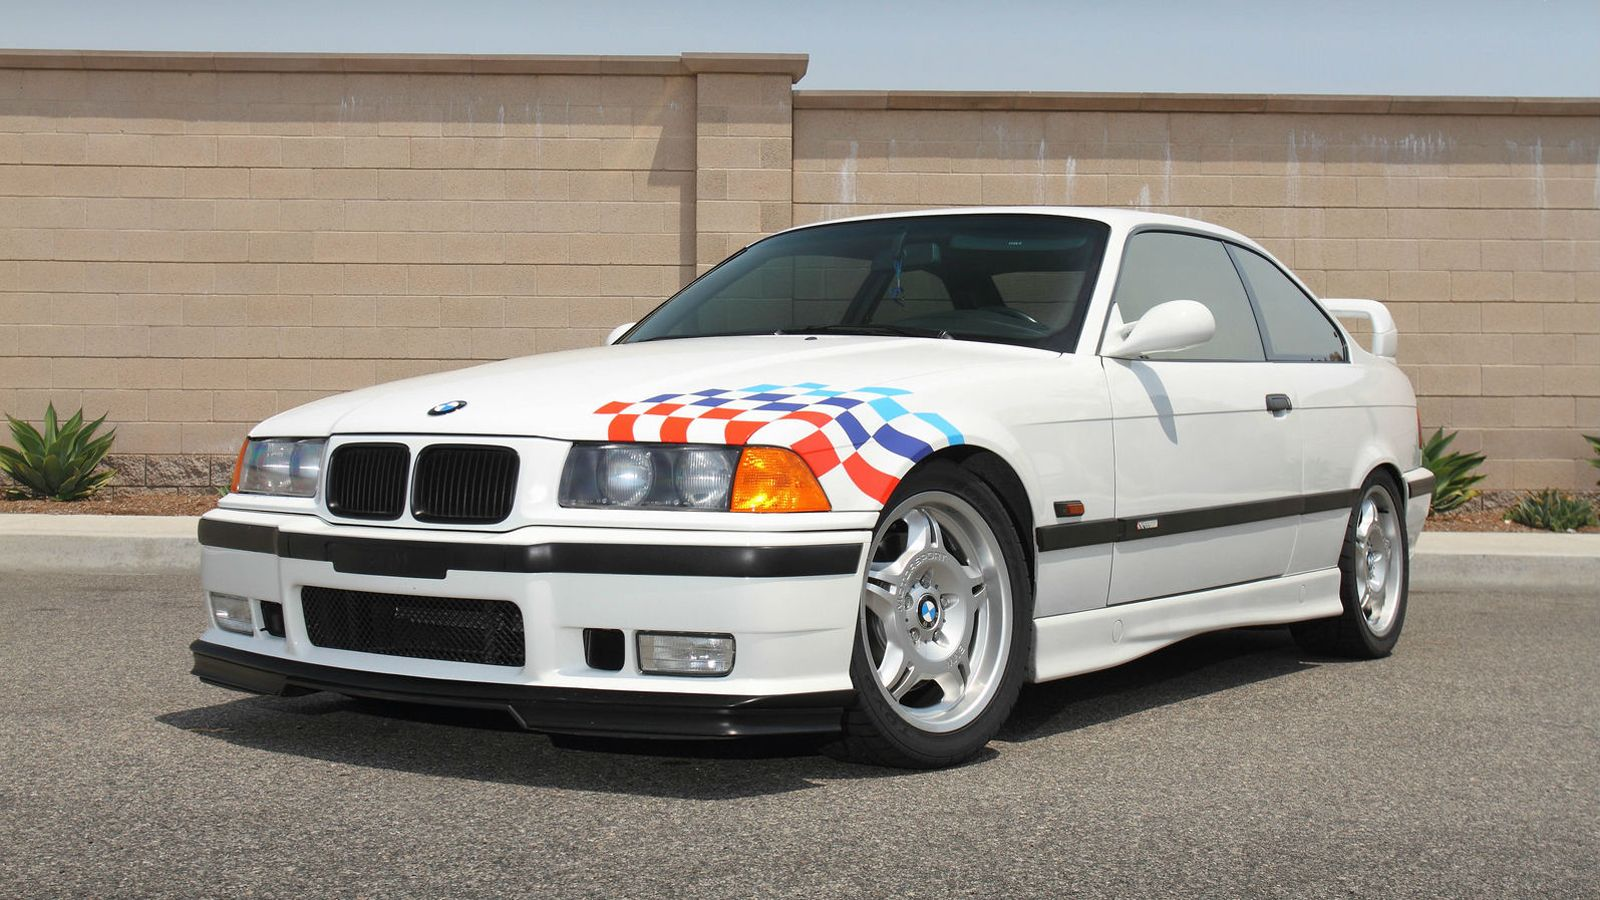 BMW_M3_Lightweight_Paul Walker_ed.jpg